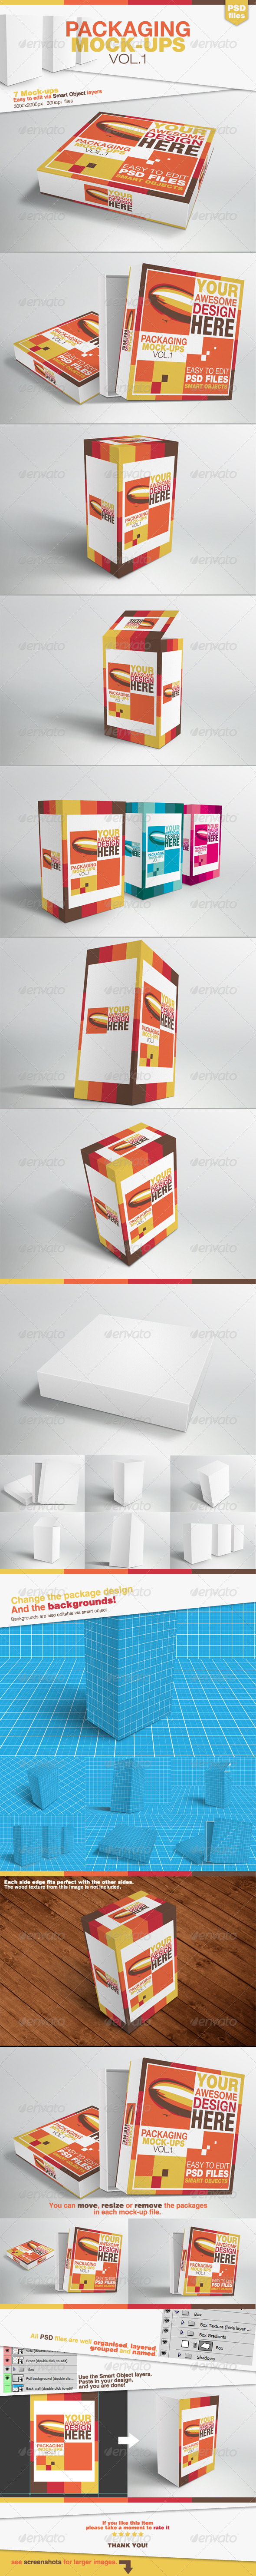 Packaging Mock-ups Vol.1 - Product Mock-Ups Graphics